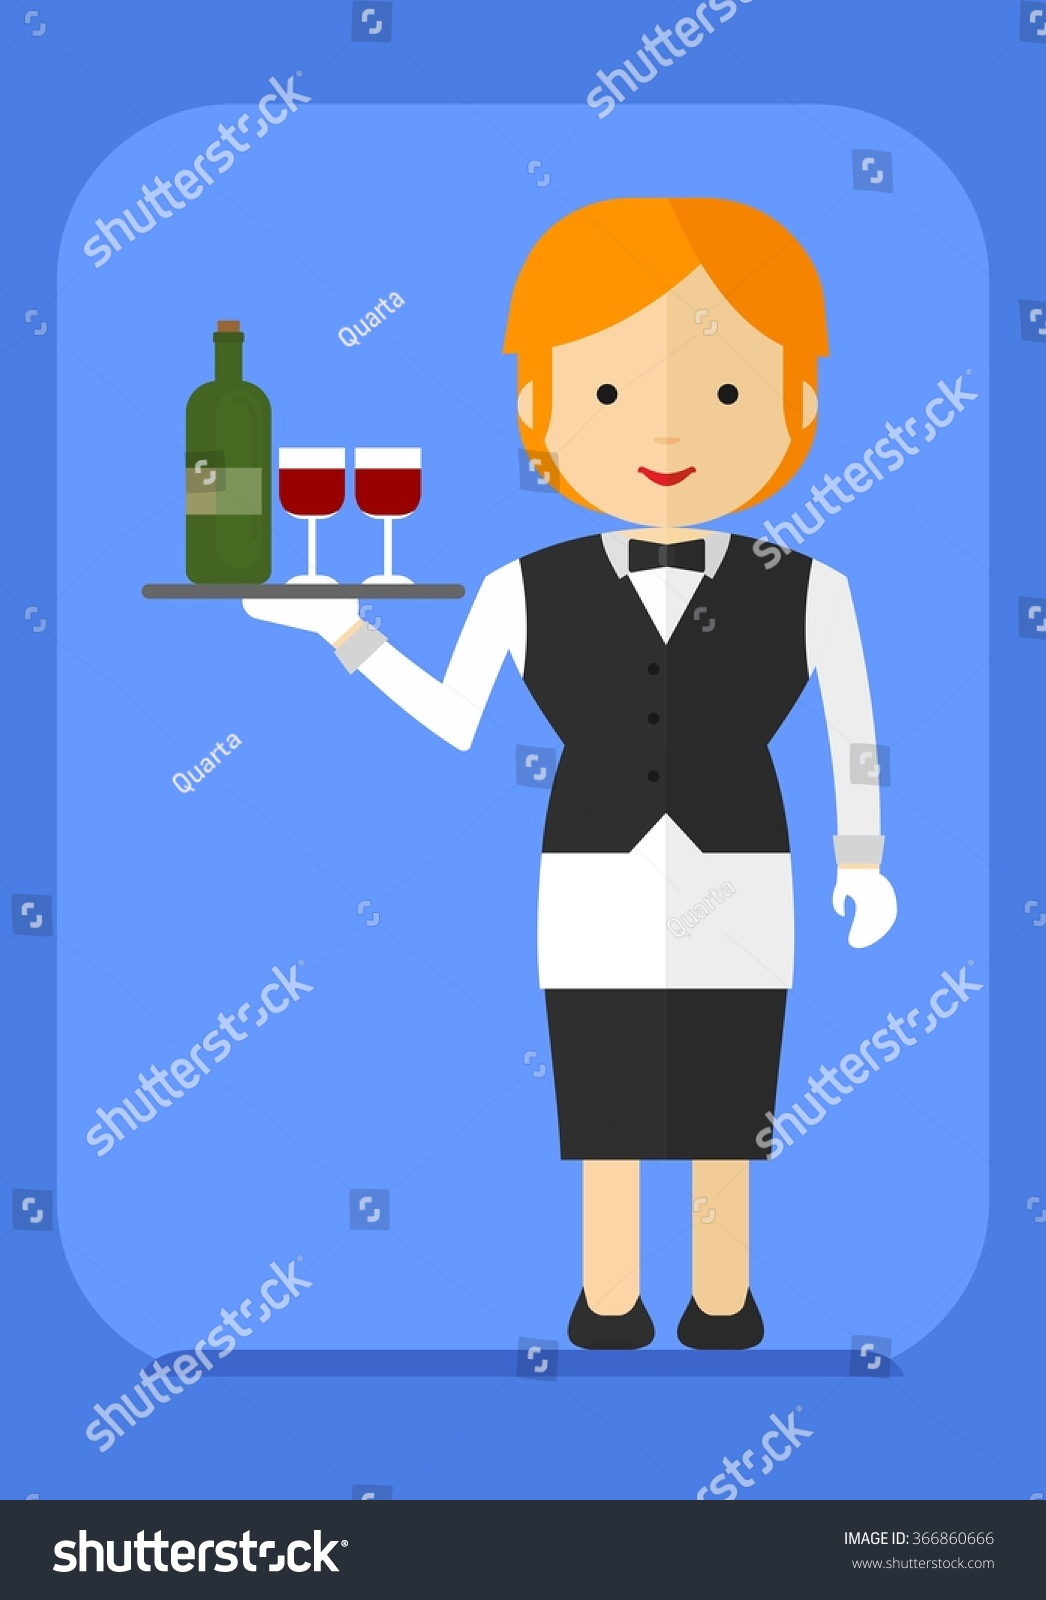 White apron food - Blonde Waitress In A Black Dress And A White Apron Carries Food Cartoon Flat Vector